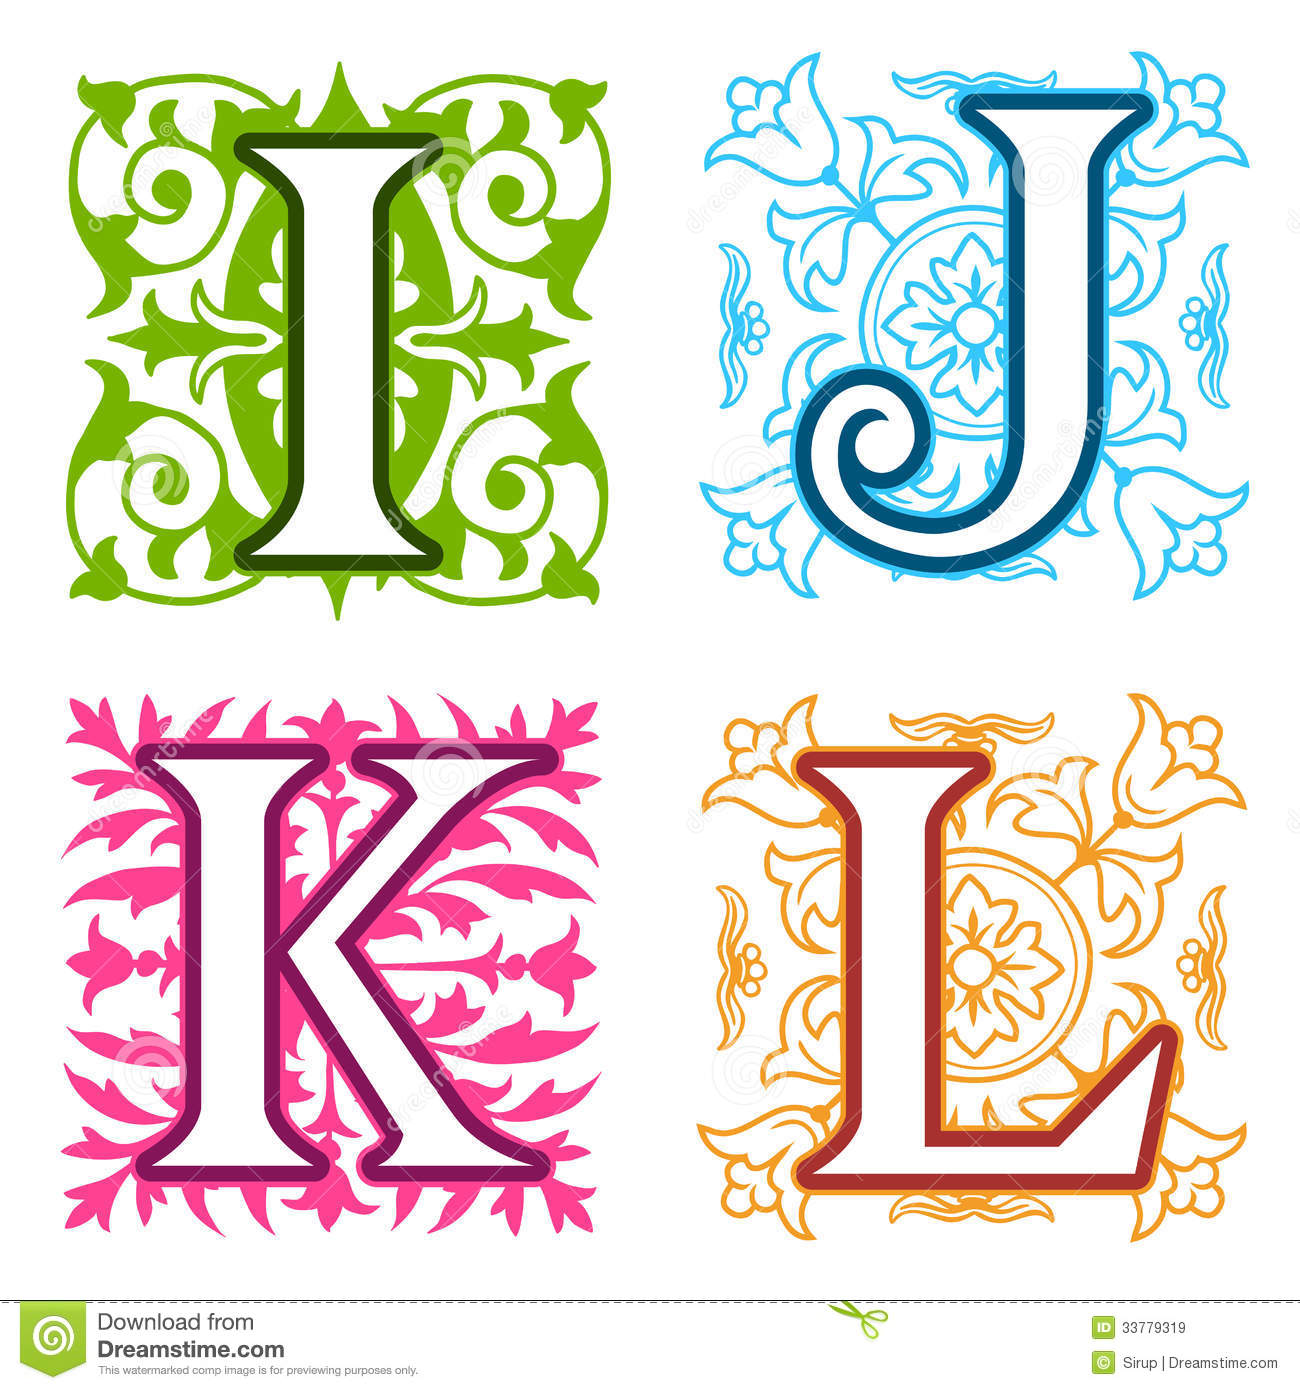 I J K L Alphabet Letters Floral Elements Royalty Free